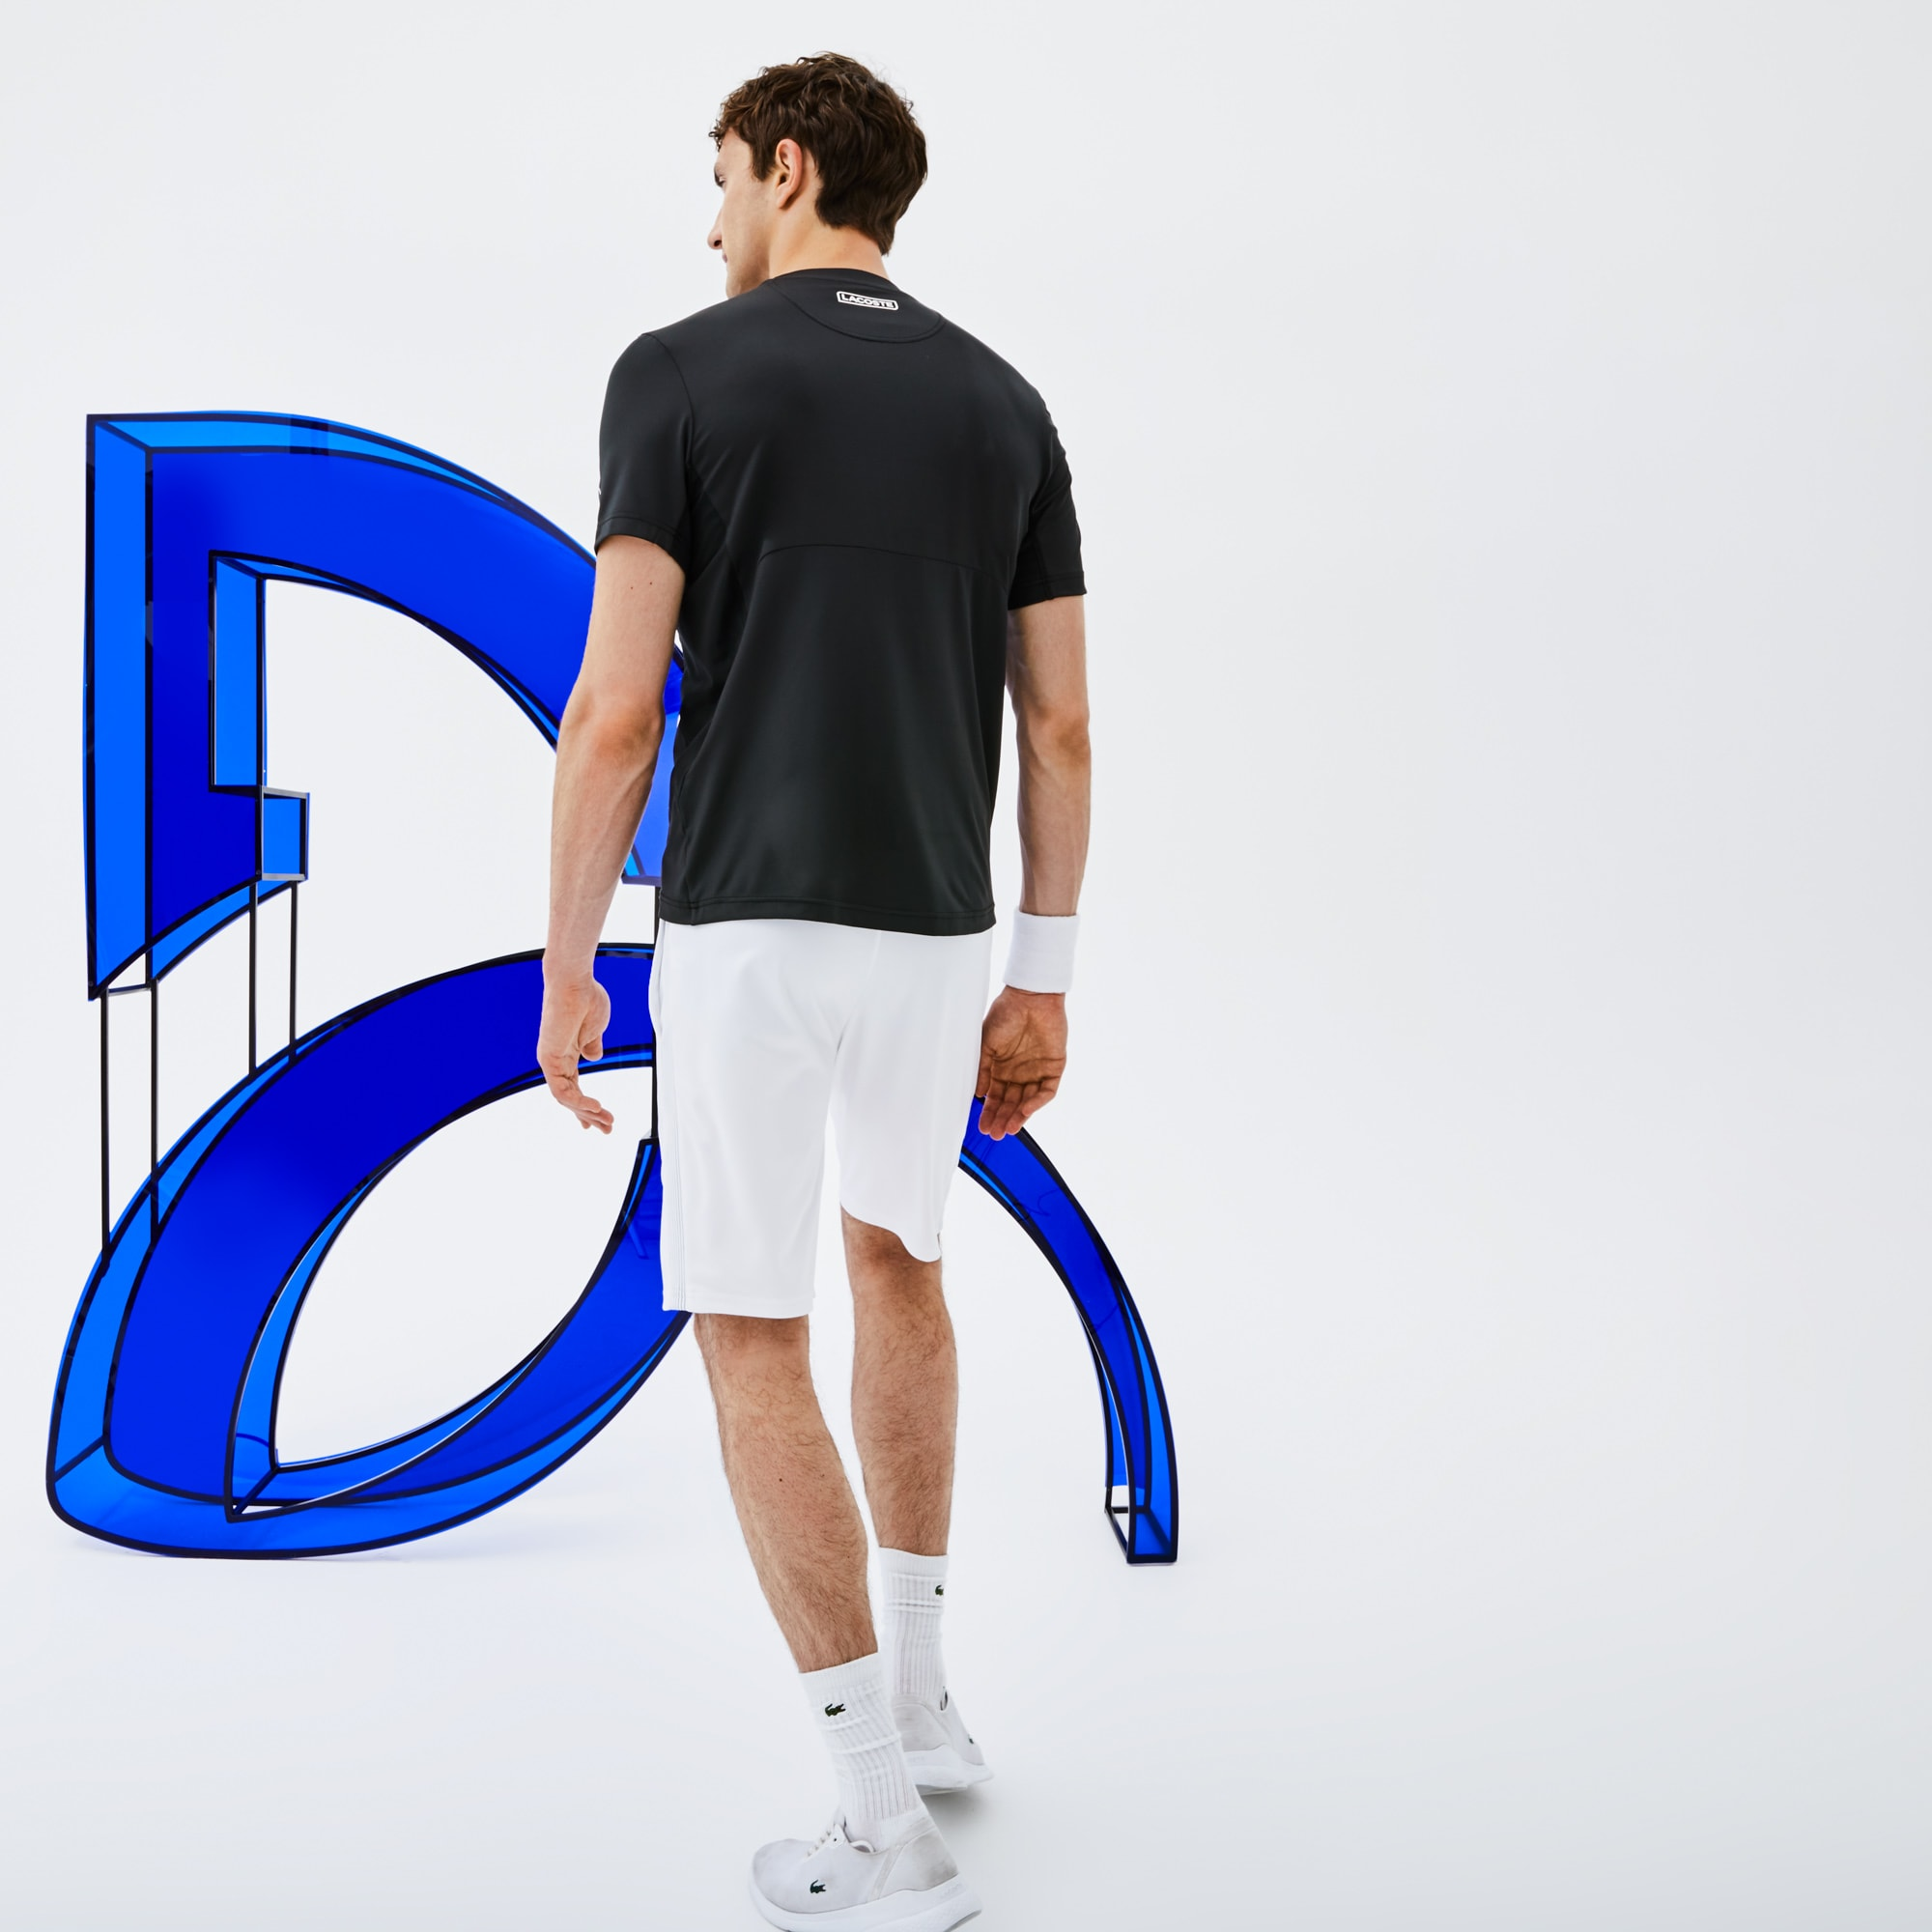 Men's Lacoste SPORT NOVAK DJOKOVIC-OFF COURT COLLECTION Crew...